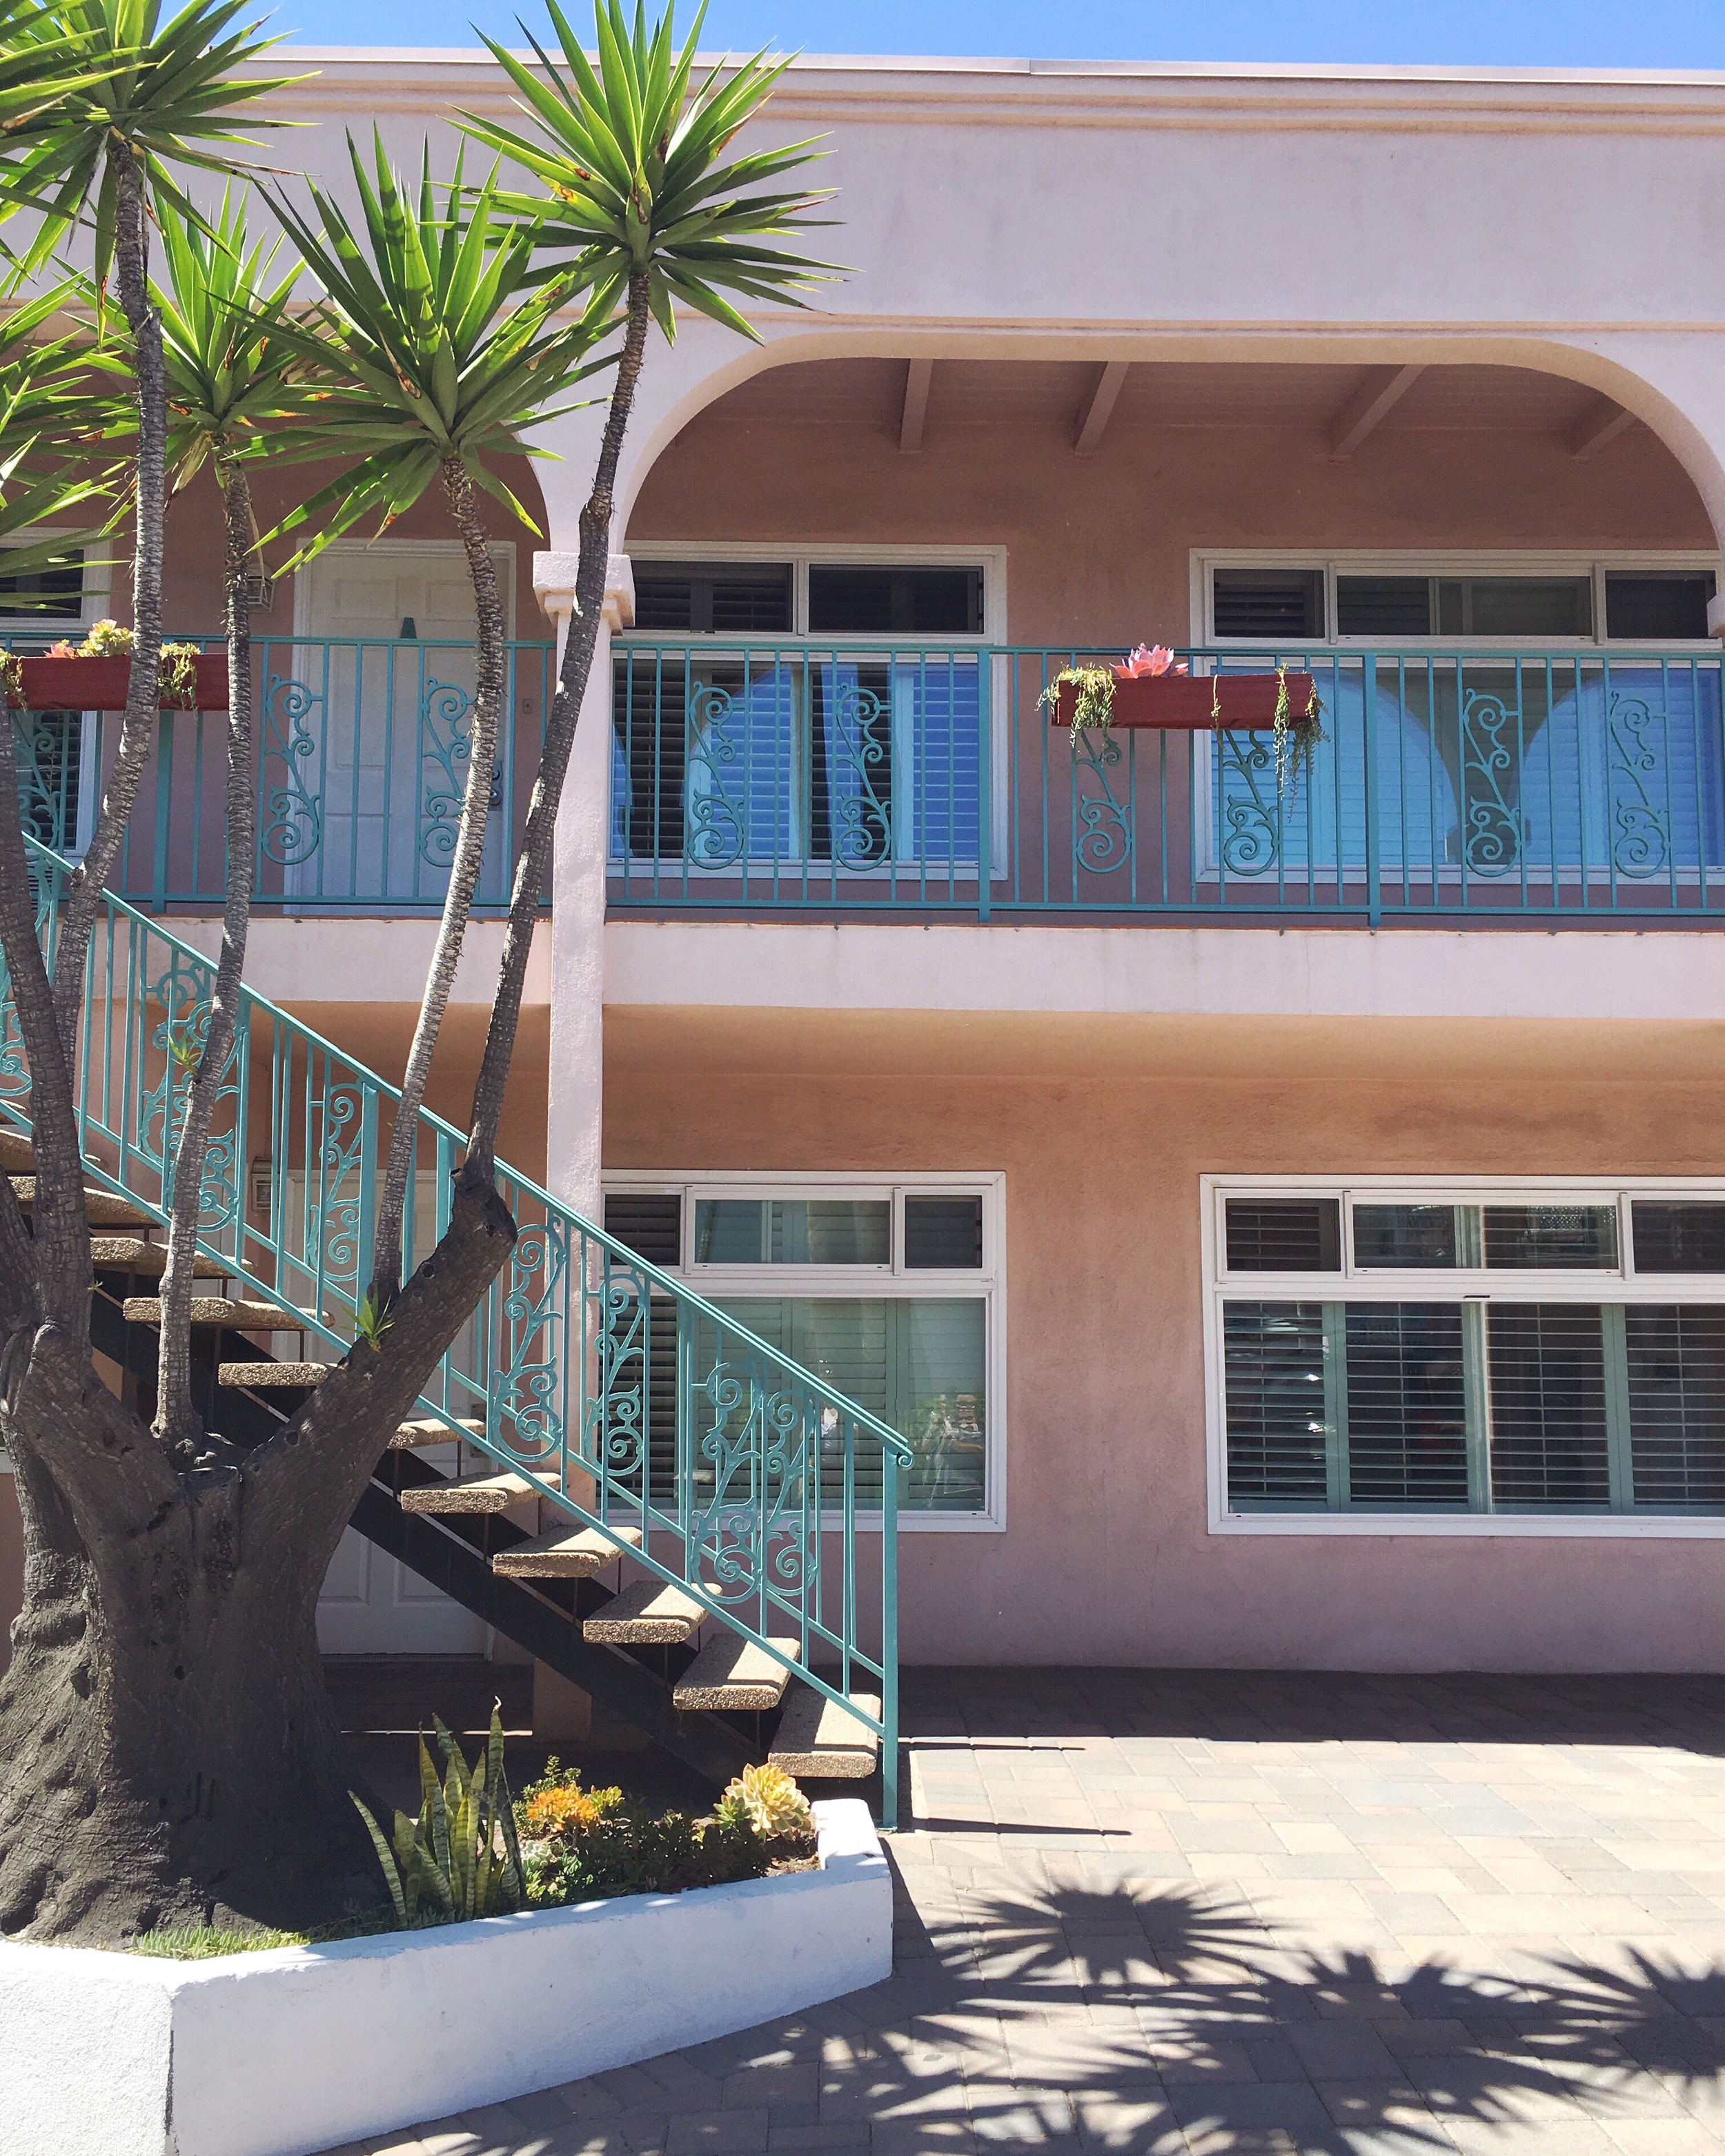 This was the cutest motel ever. I want to stay here!